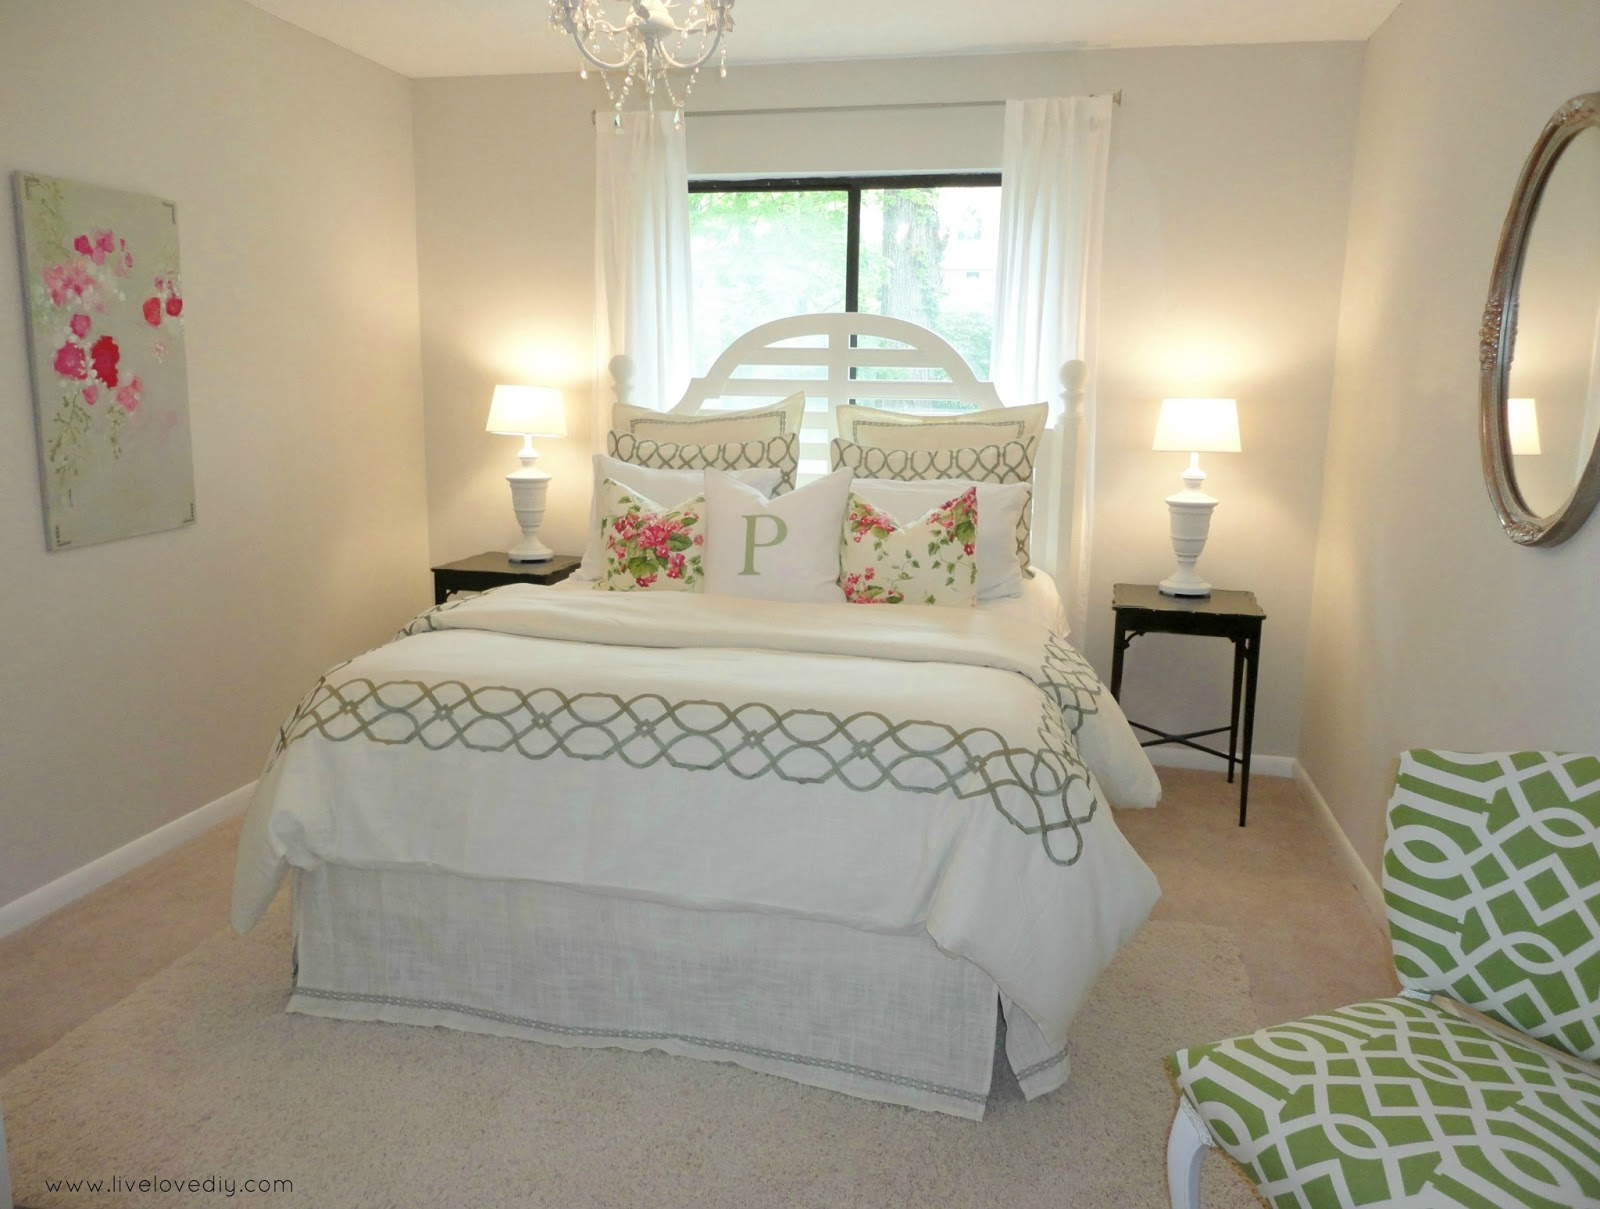 Livelovediy decorating bedrooms with secondhand finds for Bedroom decorating tips